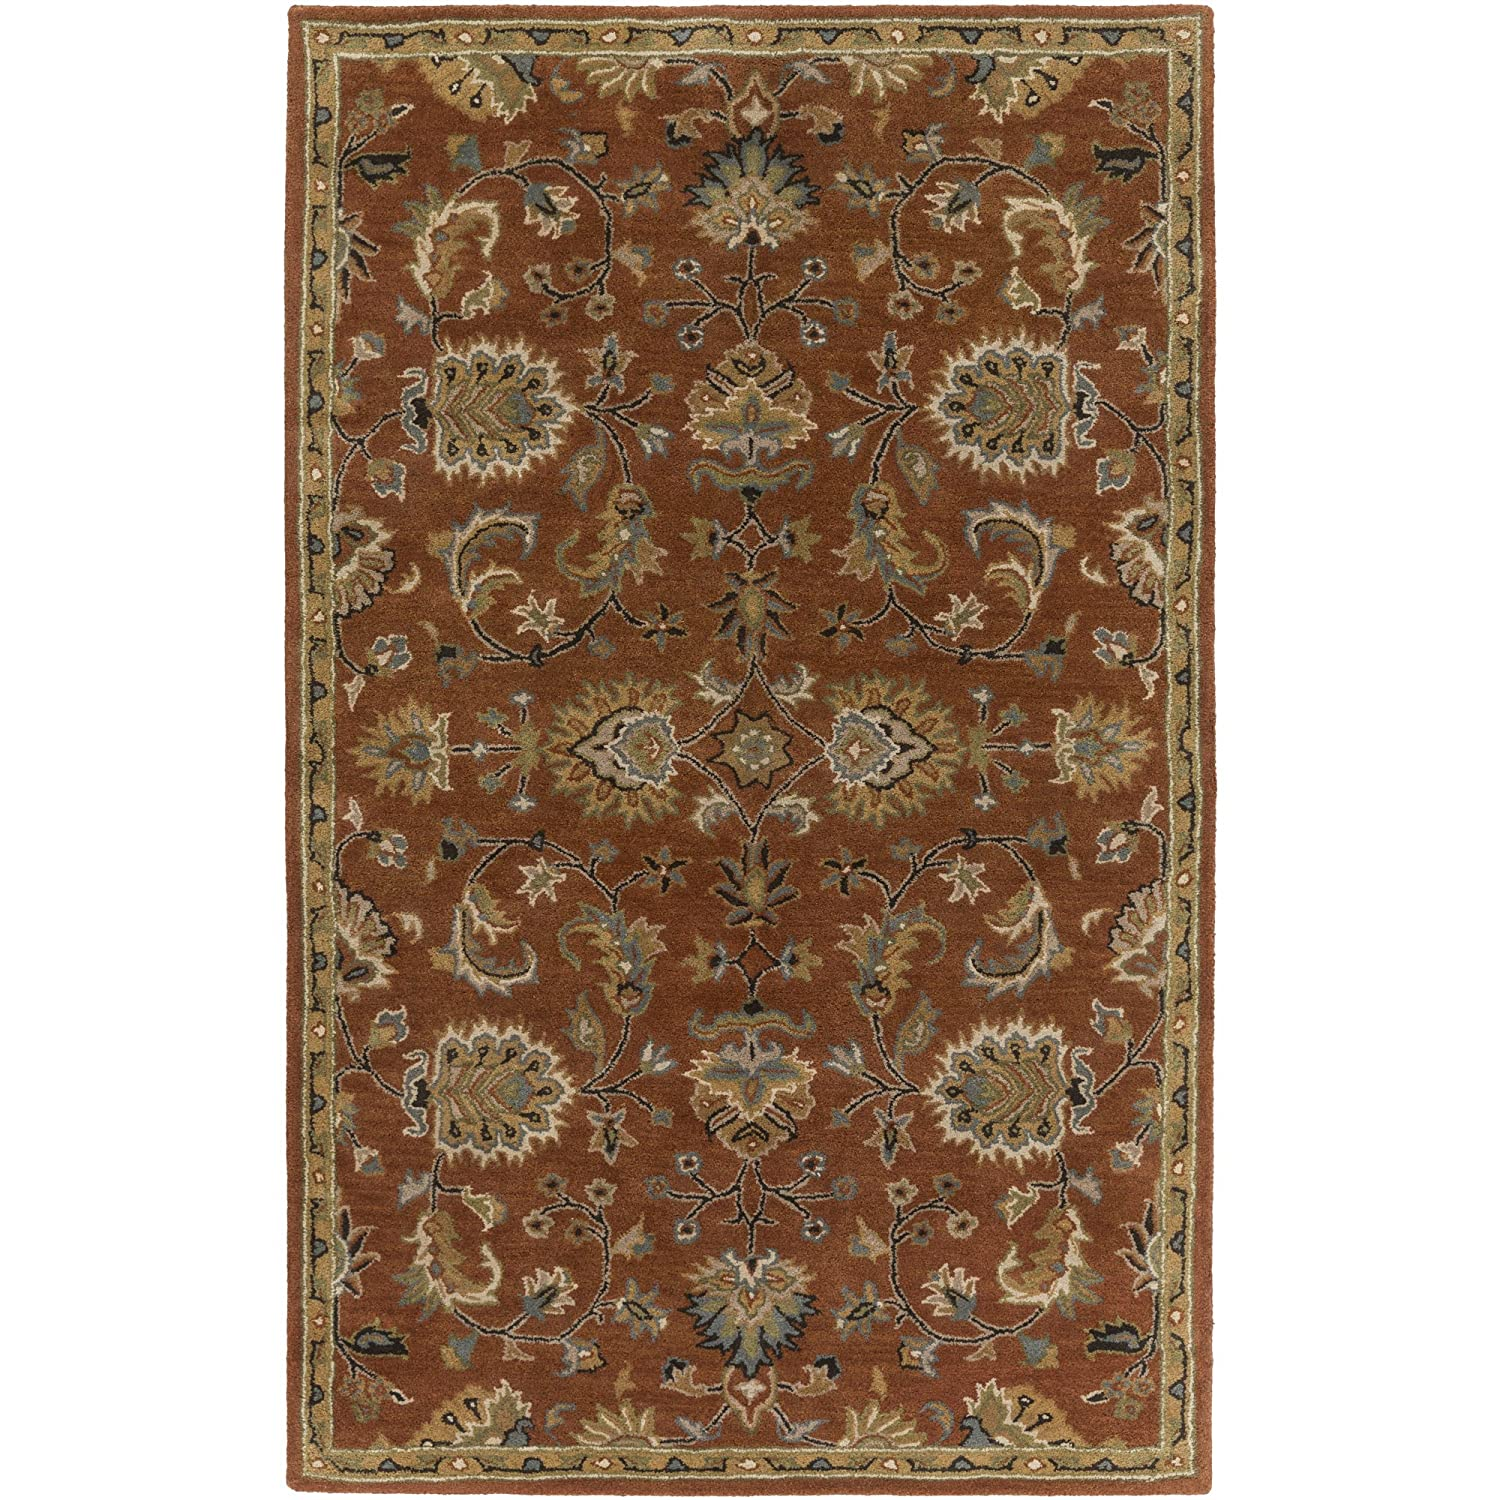 Artistic Weavers AWMD1002-23 Middleton Mallie Rug, 2' x 3' 2' x 3' imported